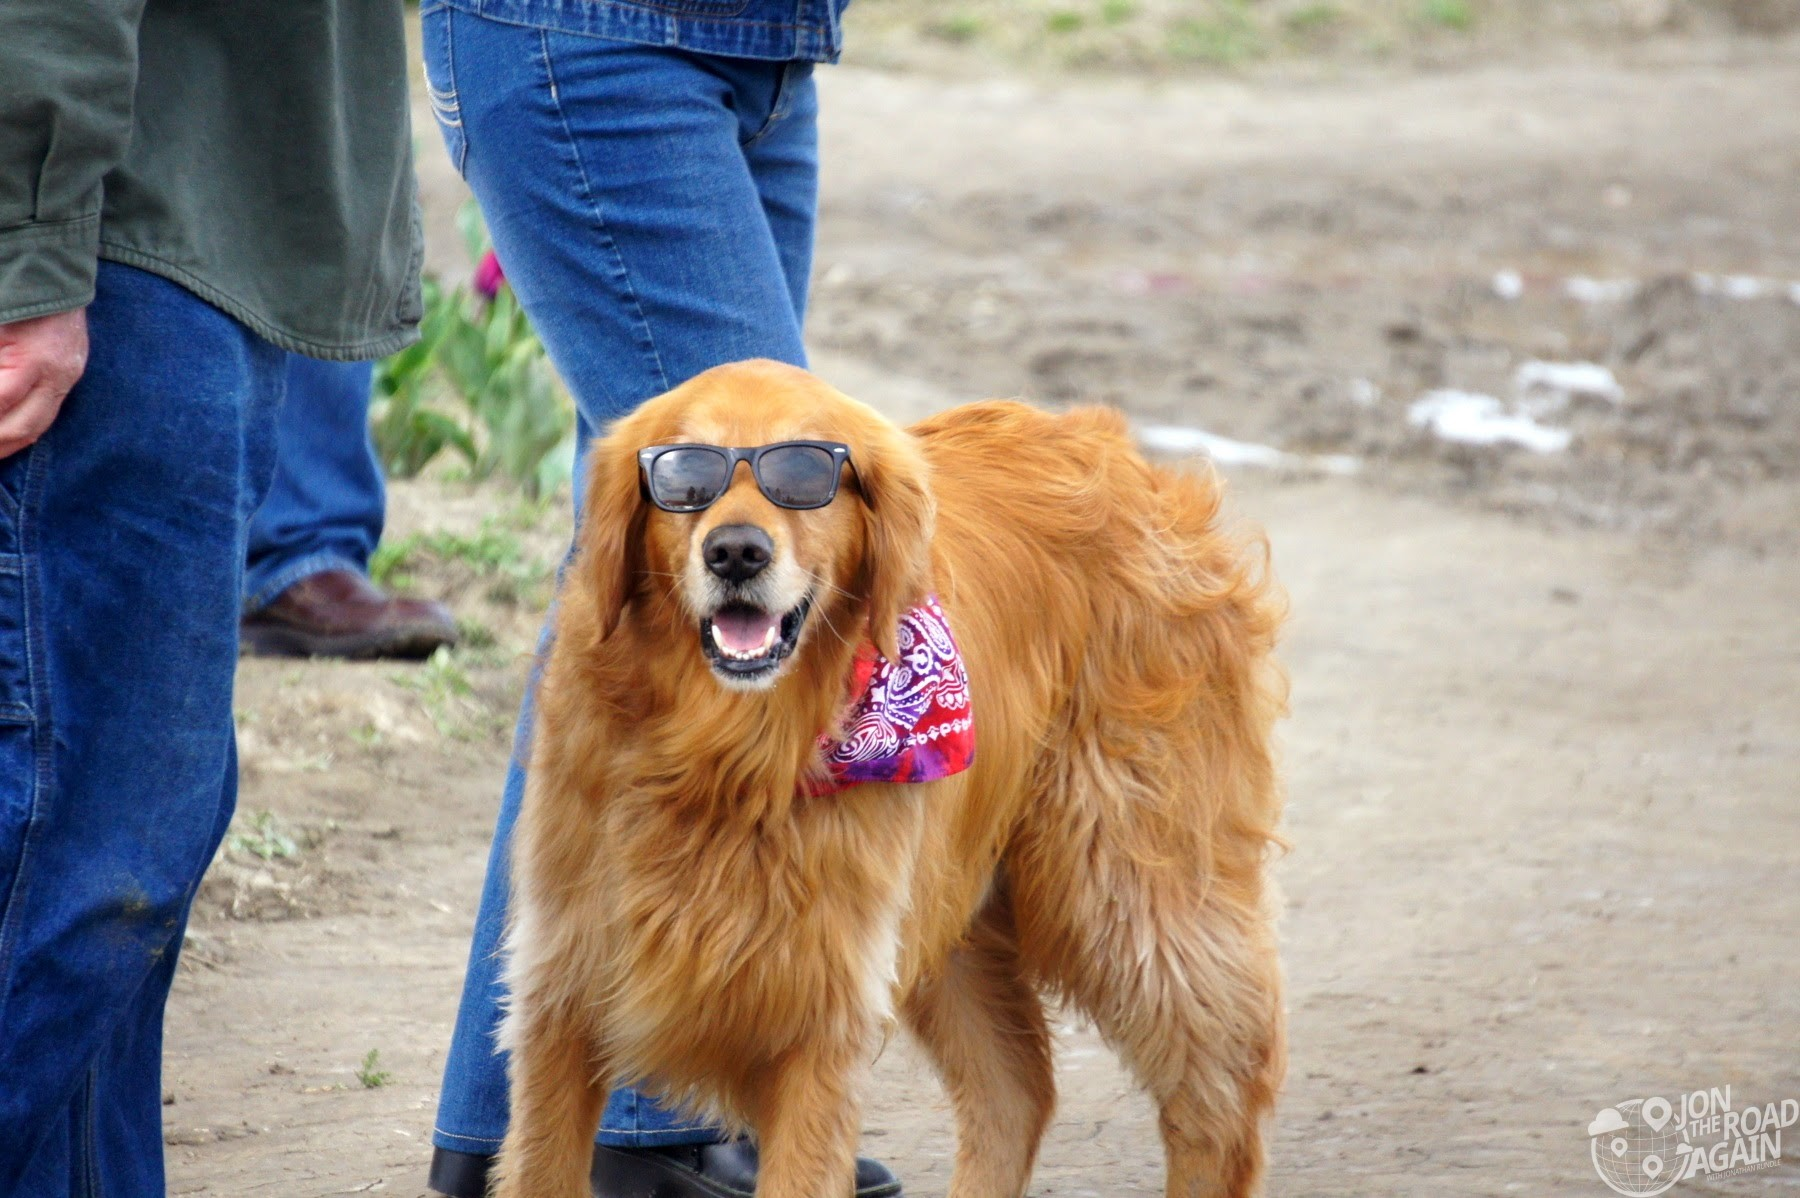 Cool dog at Skagit Vallet Tulip Festival